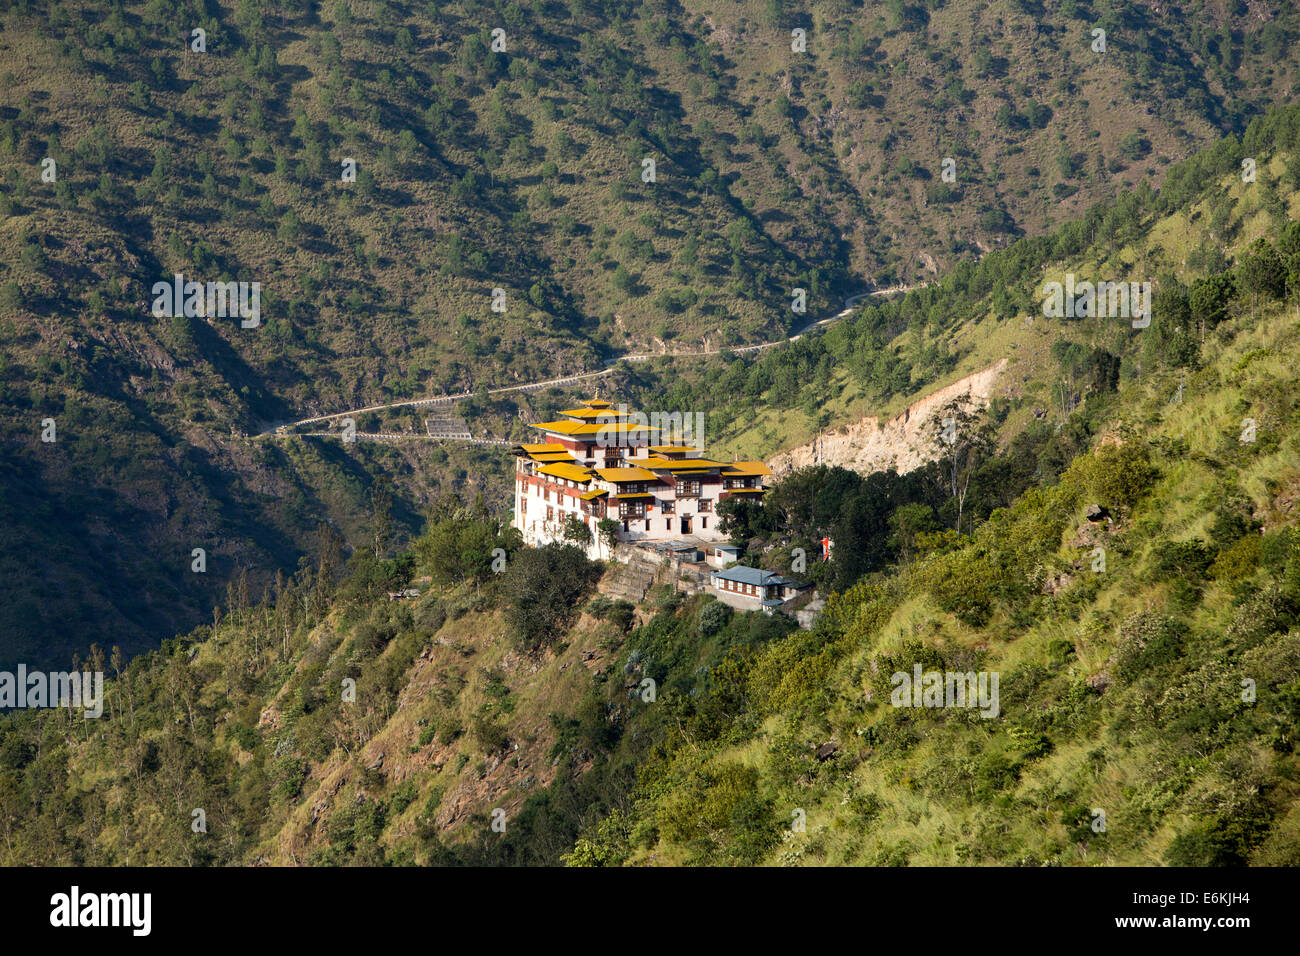 Eastern Bhutan, Trashigang, Dzong on hillside - Stock Image